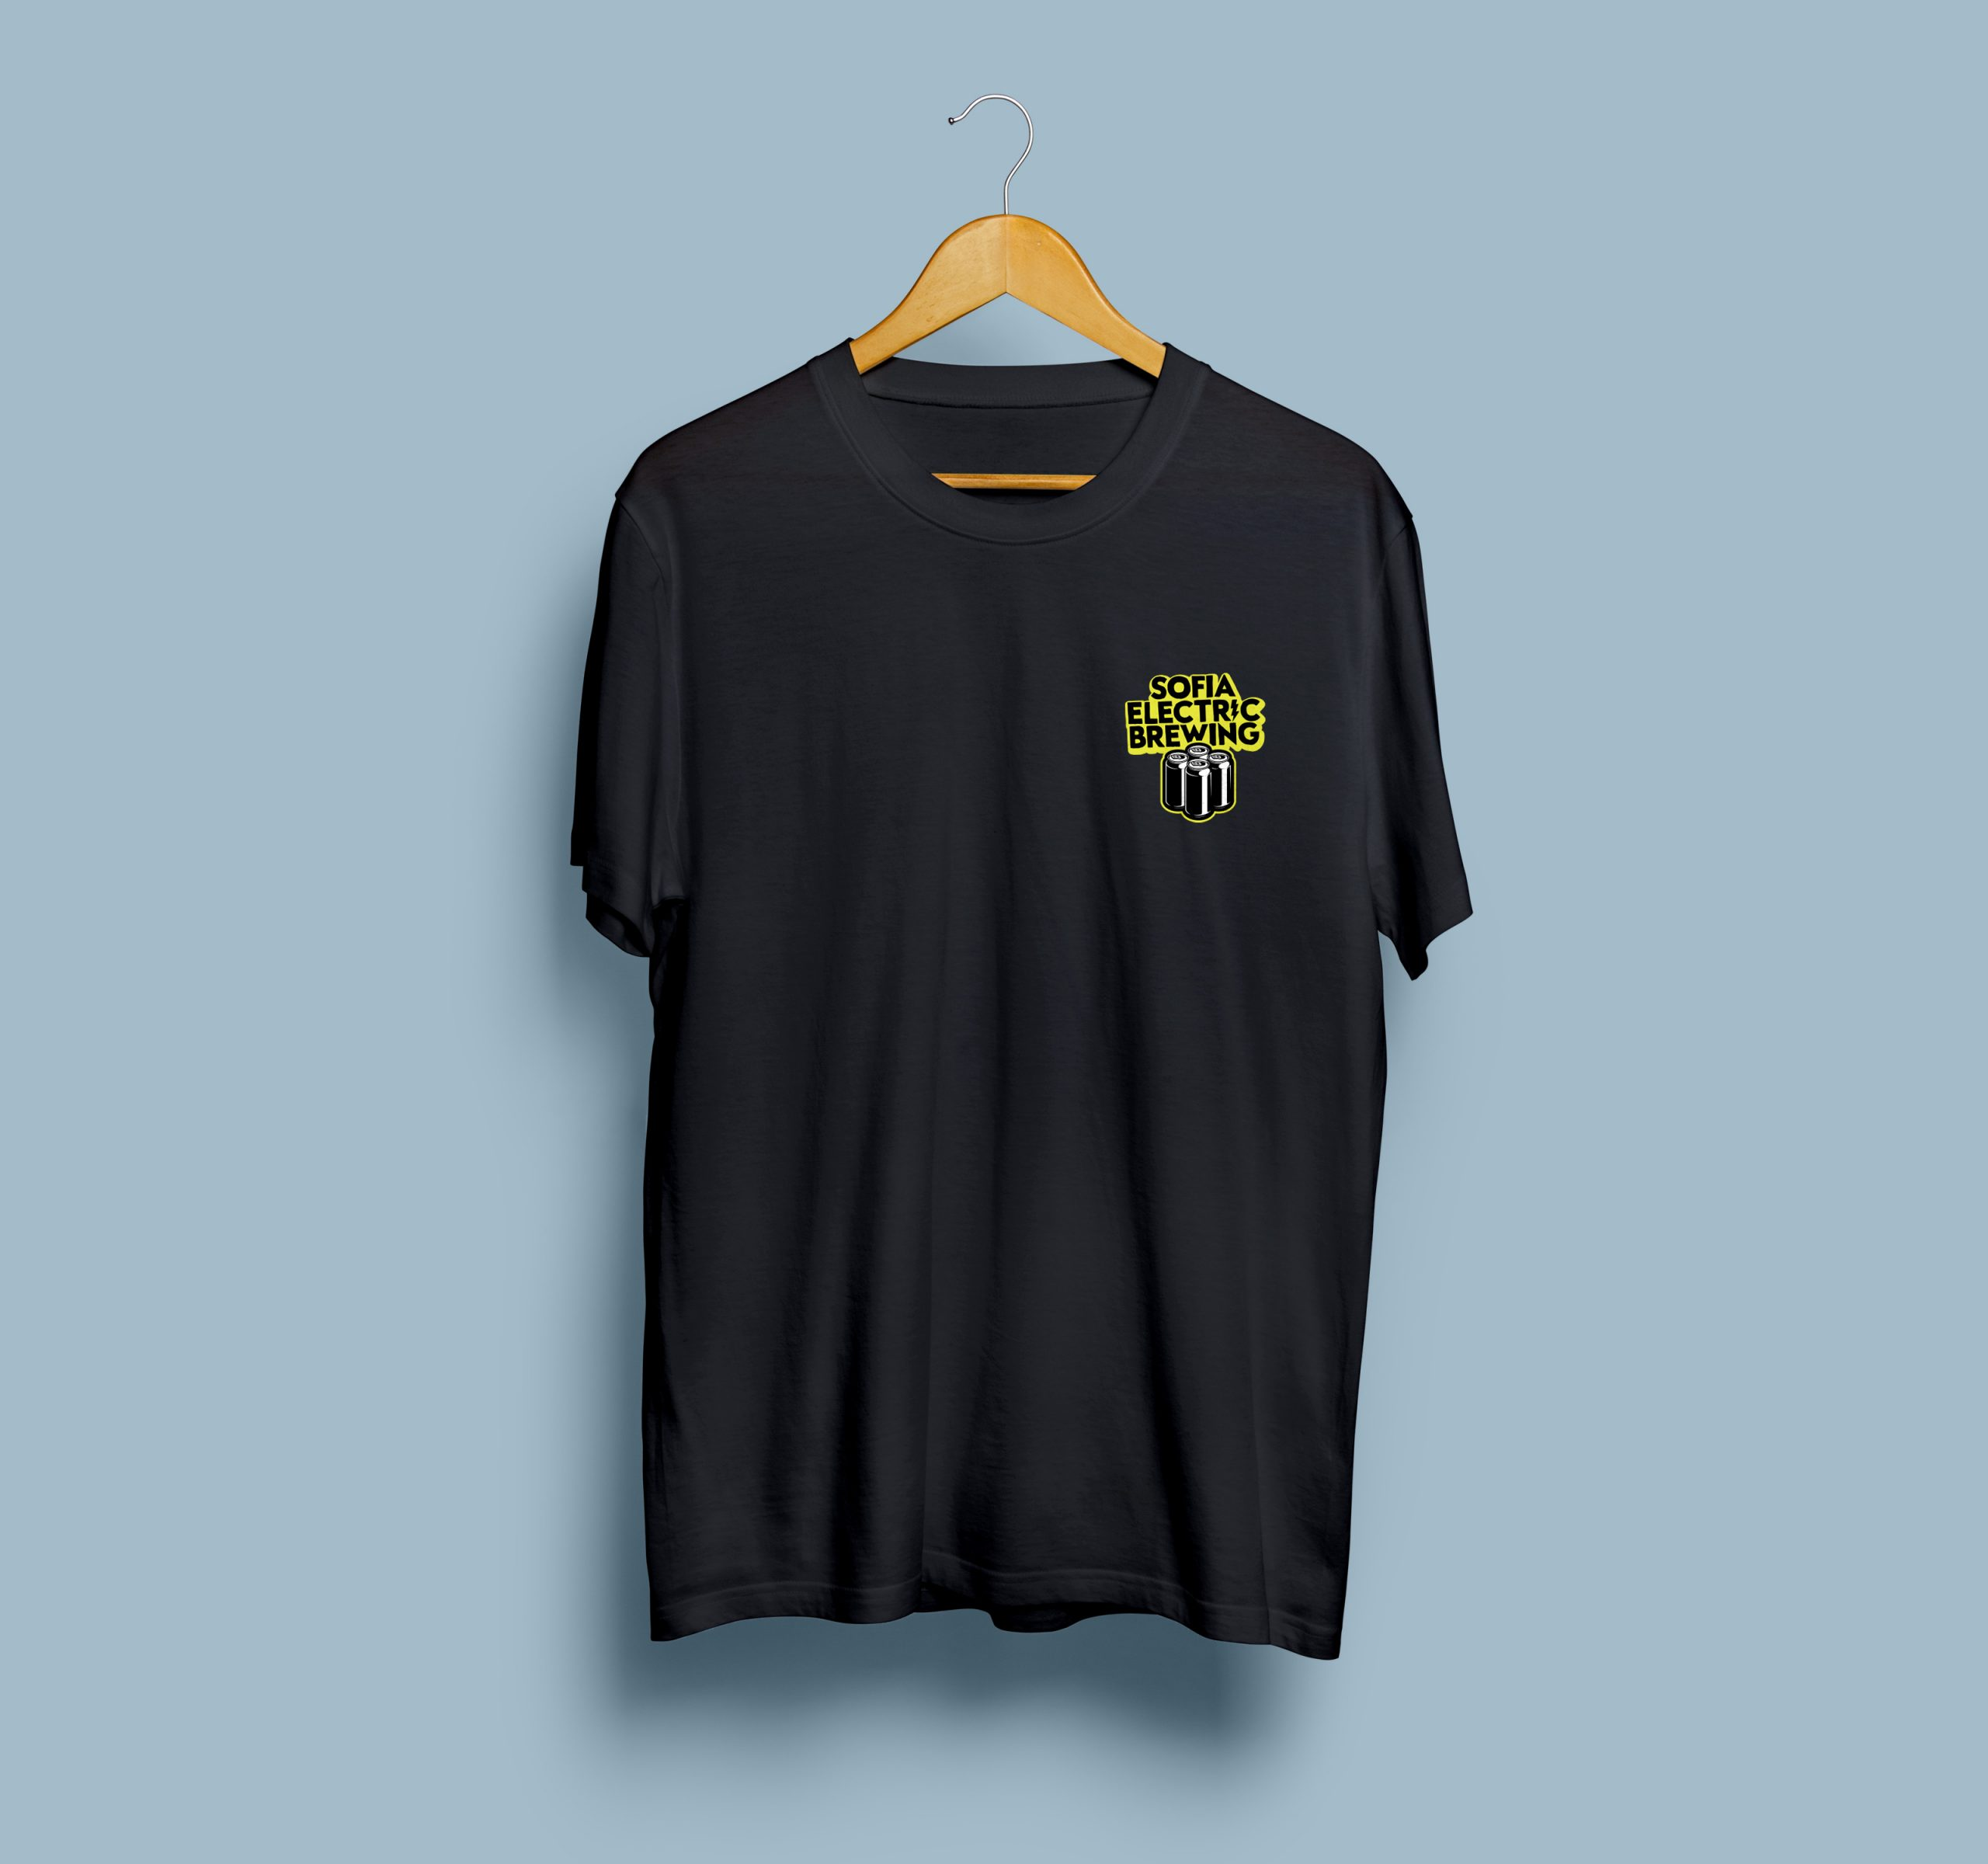 Just another t-shirt